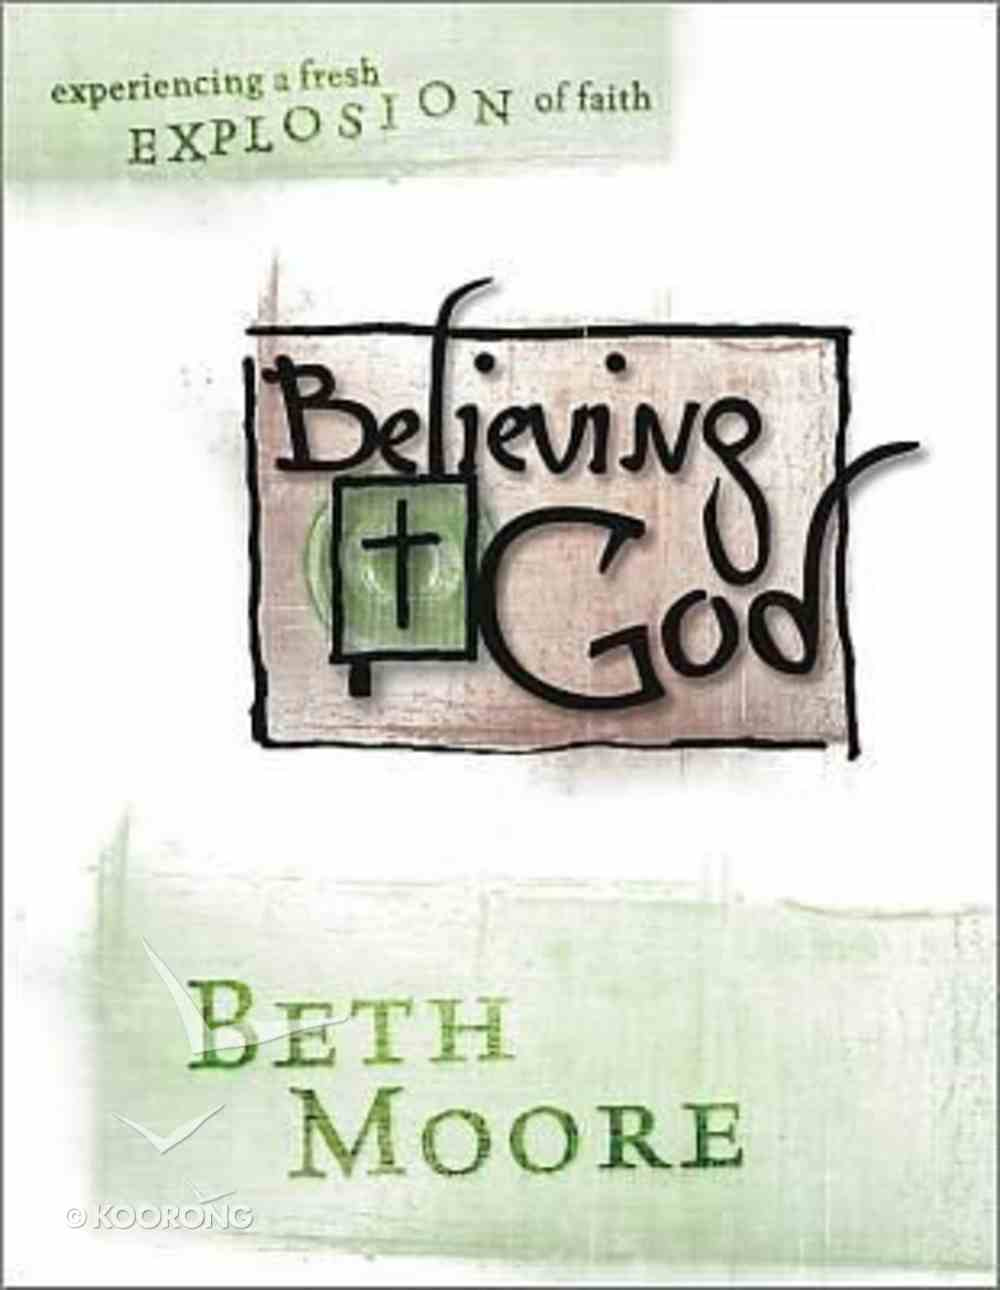 Believing God CD